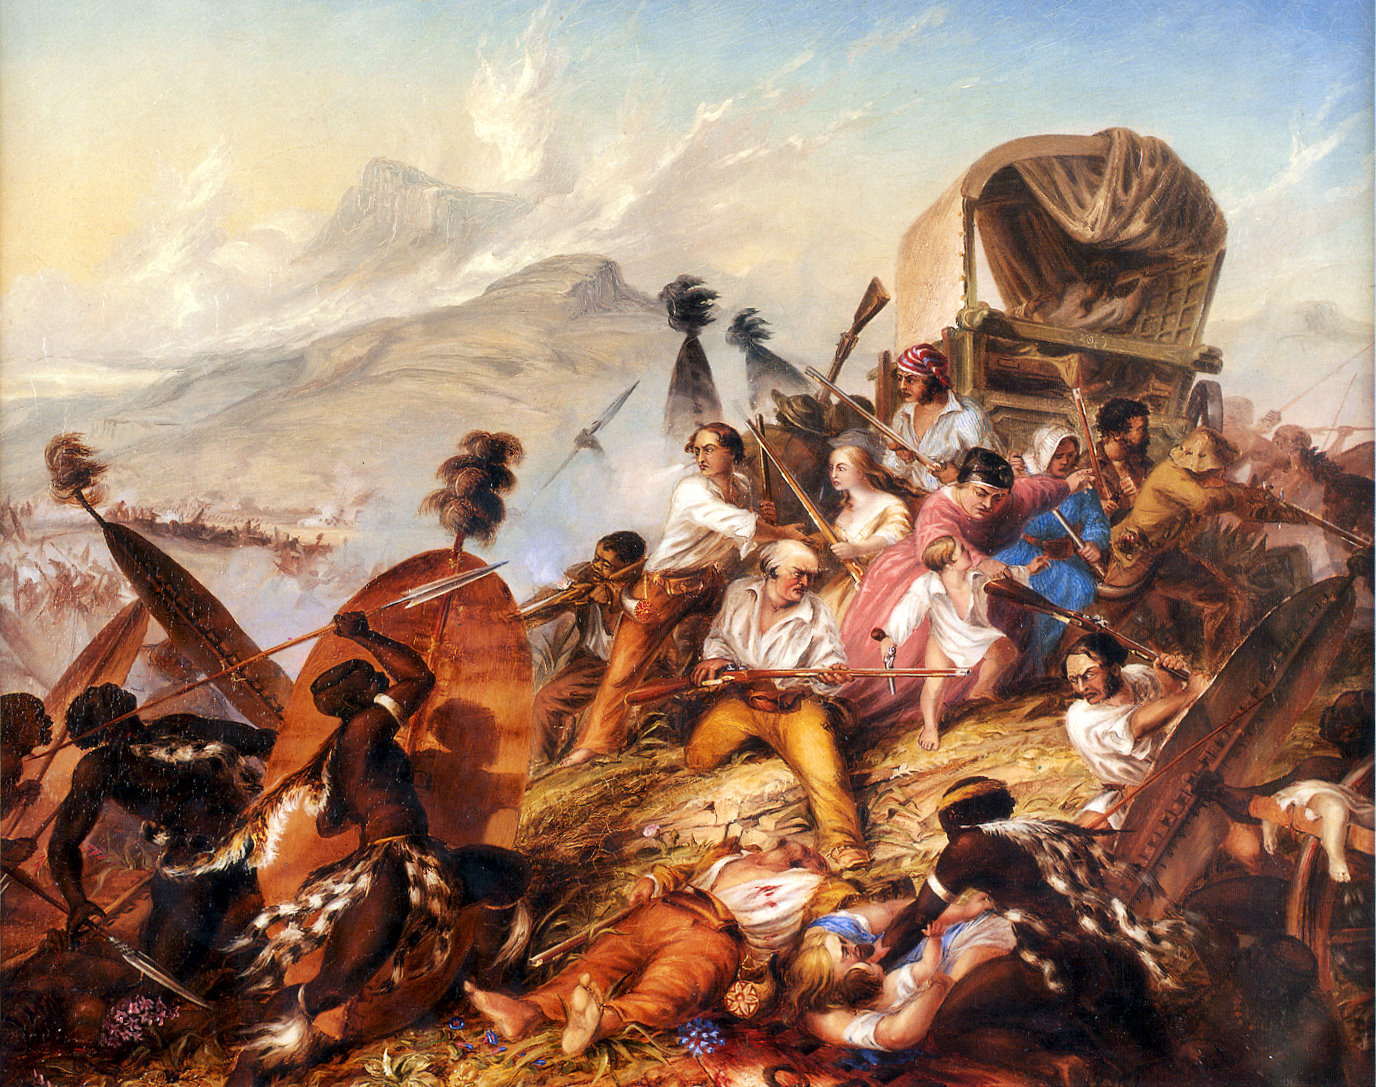 Charles_Bell.Depiction of a Zulu attack on a Boer camp in February 1838.